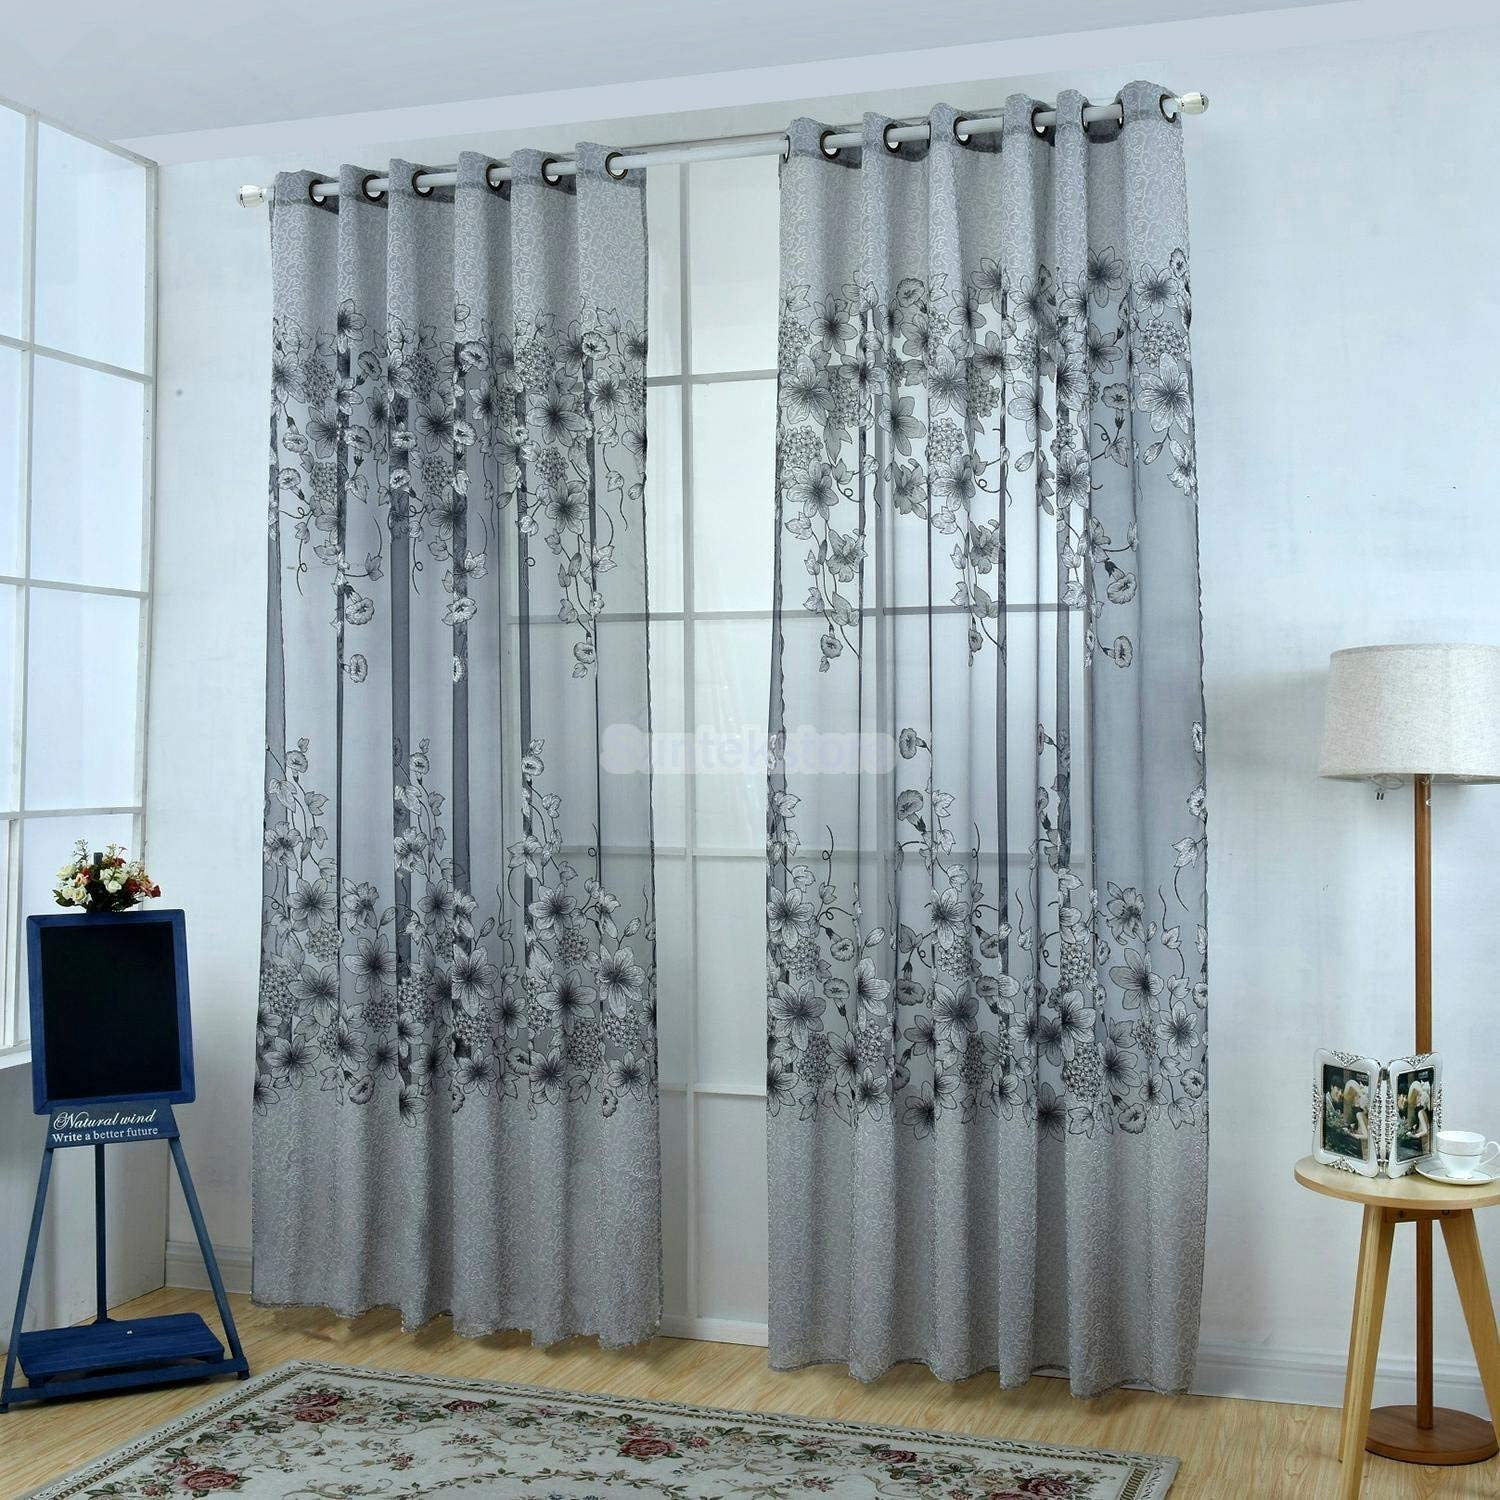 Floral Curtain Home Room Decor Kitchen Sheer Cafe Window Panel Drape Grey